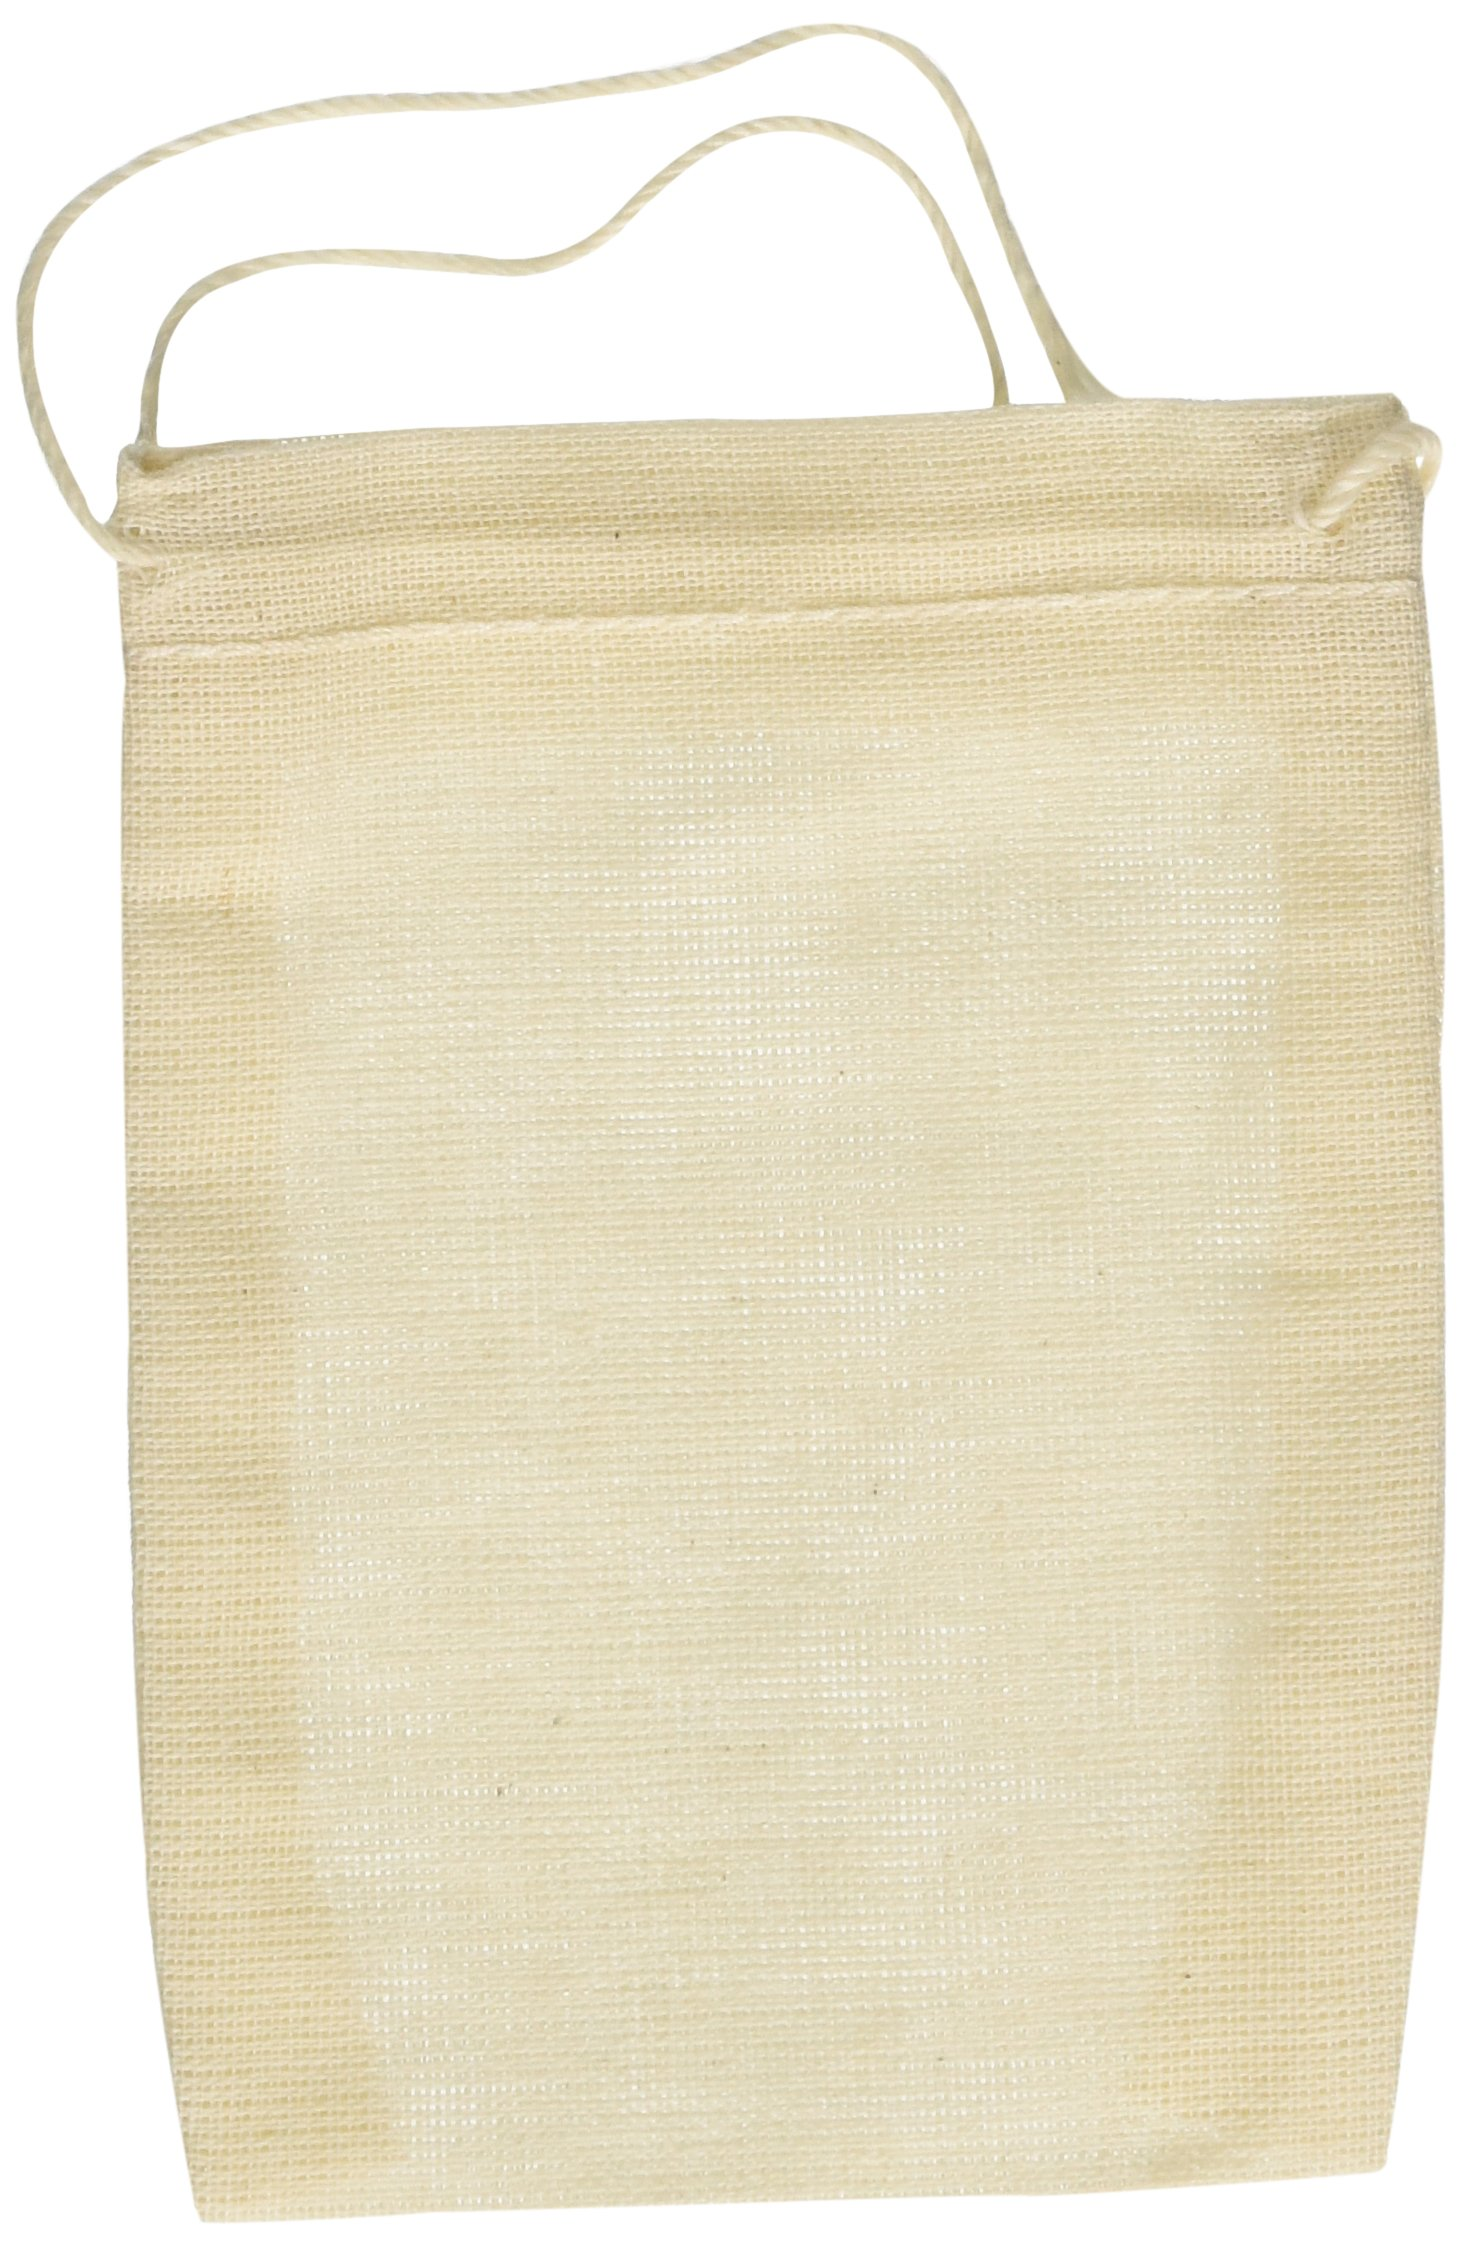 1 X Cotton Muslin Bags 3x4 Inch Drawstring 50 Count Pack